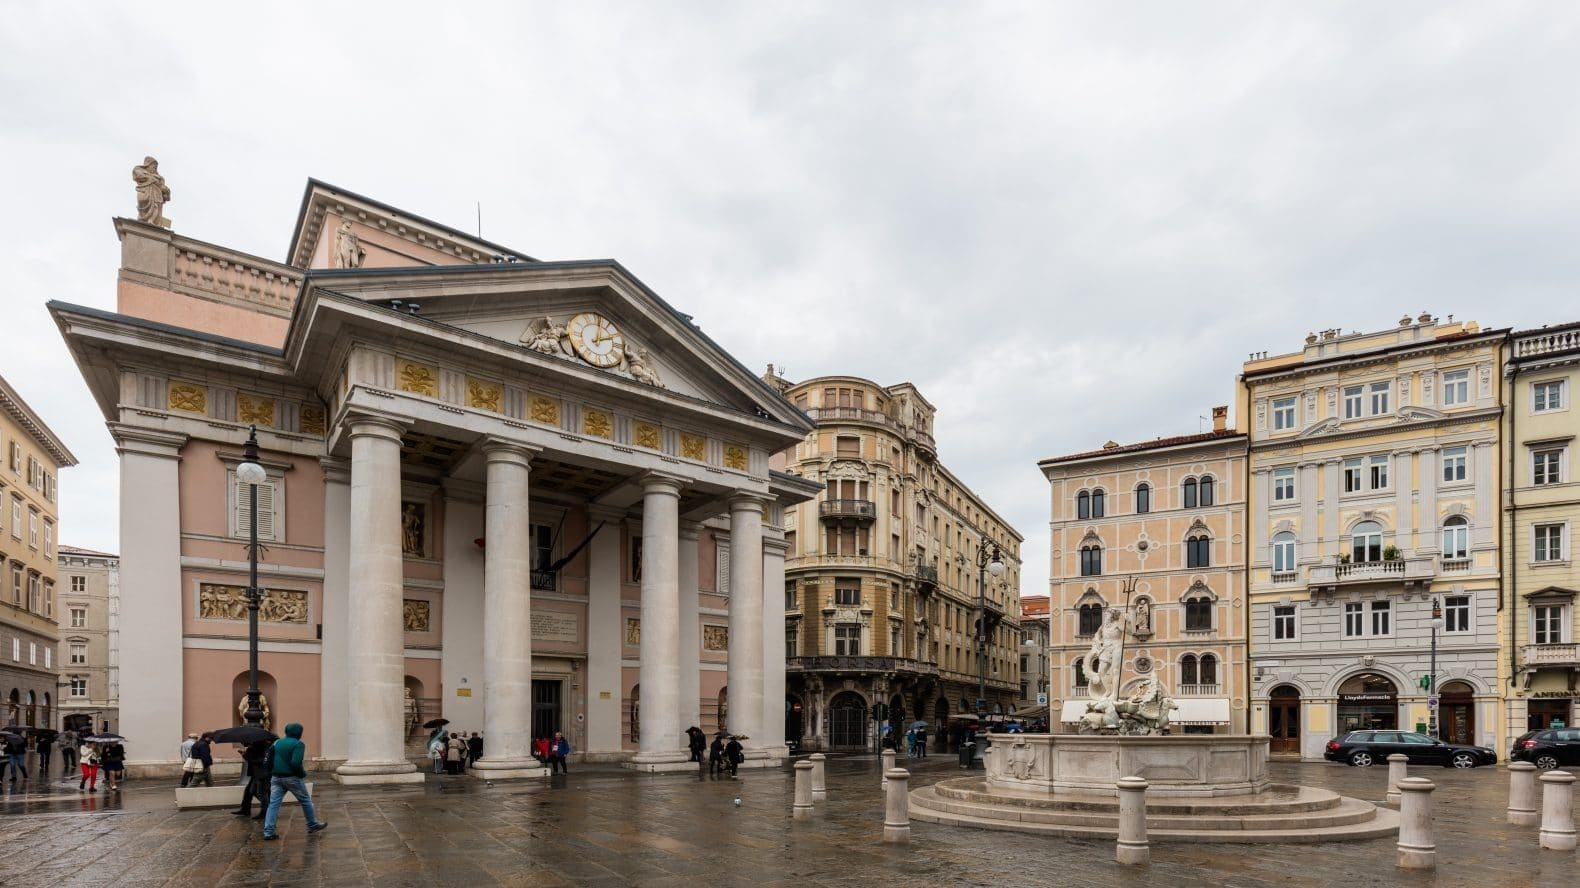 Croatia Protests to Italy Over D'Annunzio Monument in Trieste | Balkan Insight